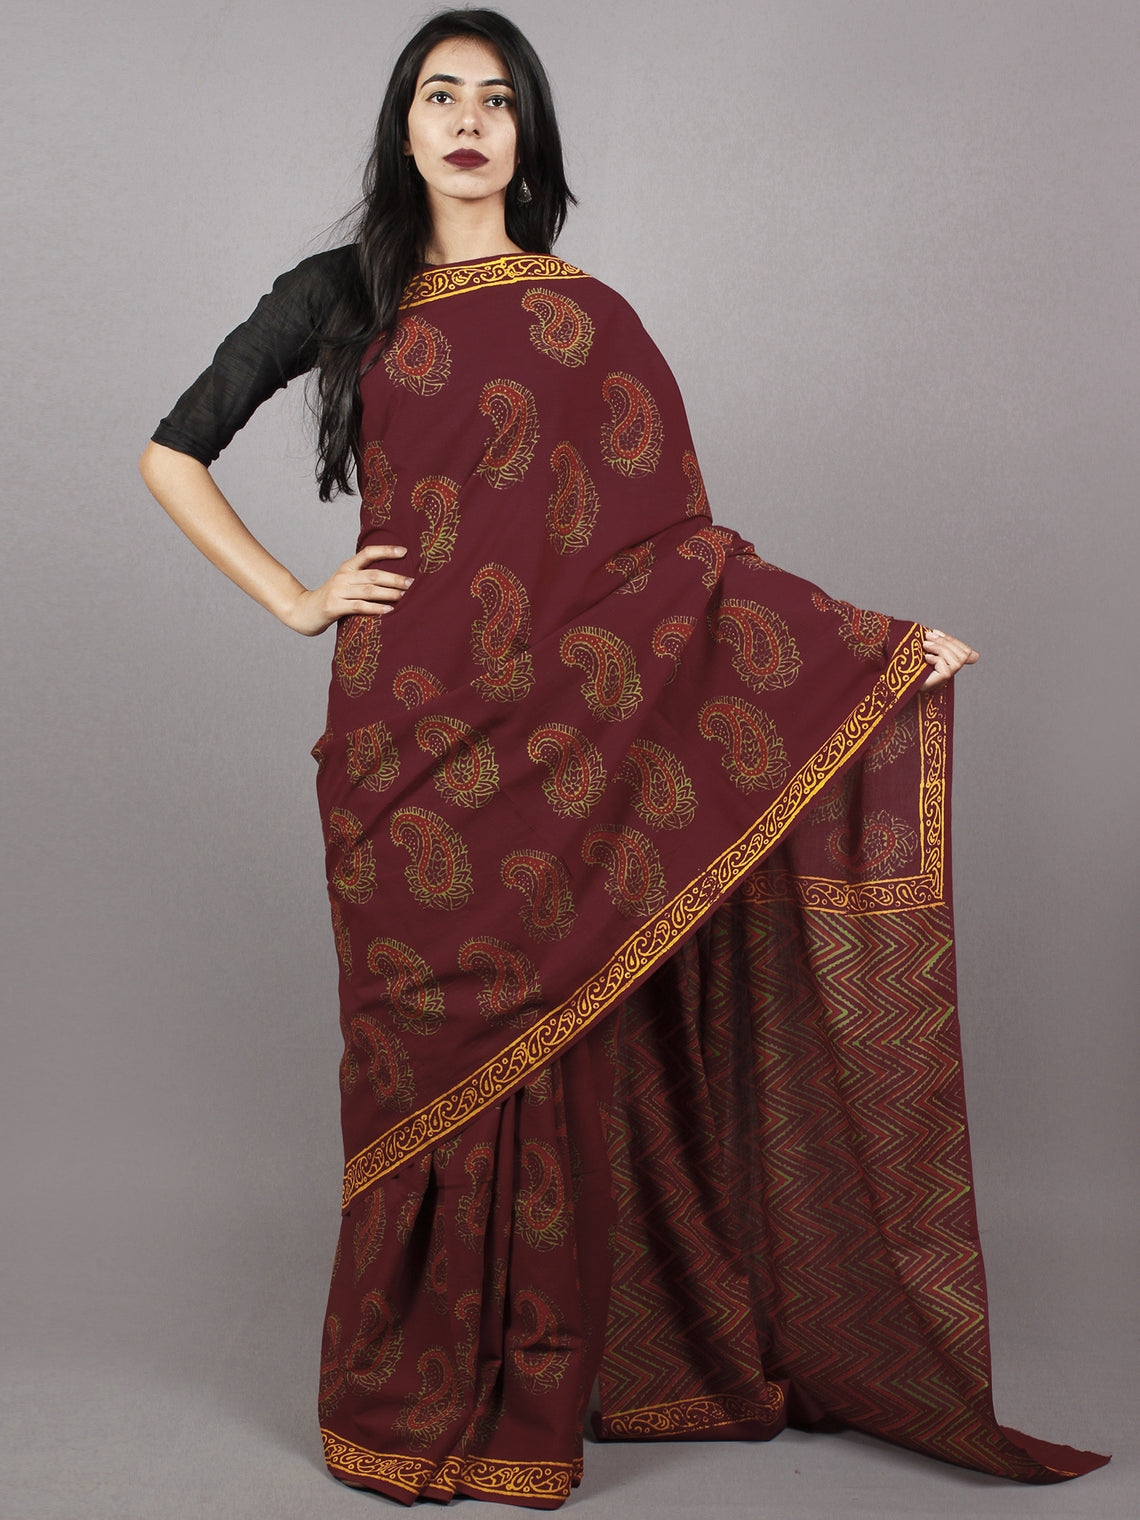 Gingerbread Maroon Yellow Green Hand Block Printed Cotton Saree - S031701370